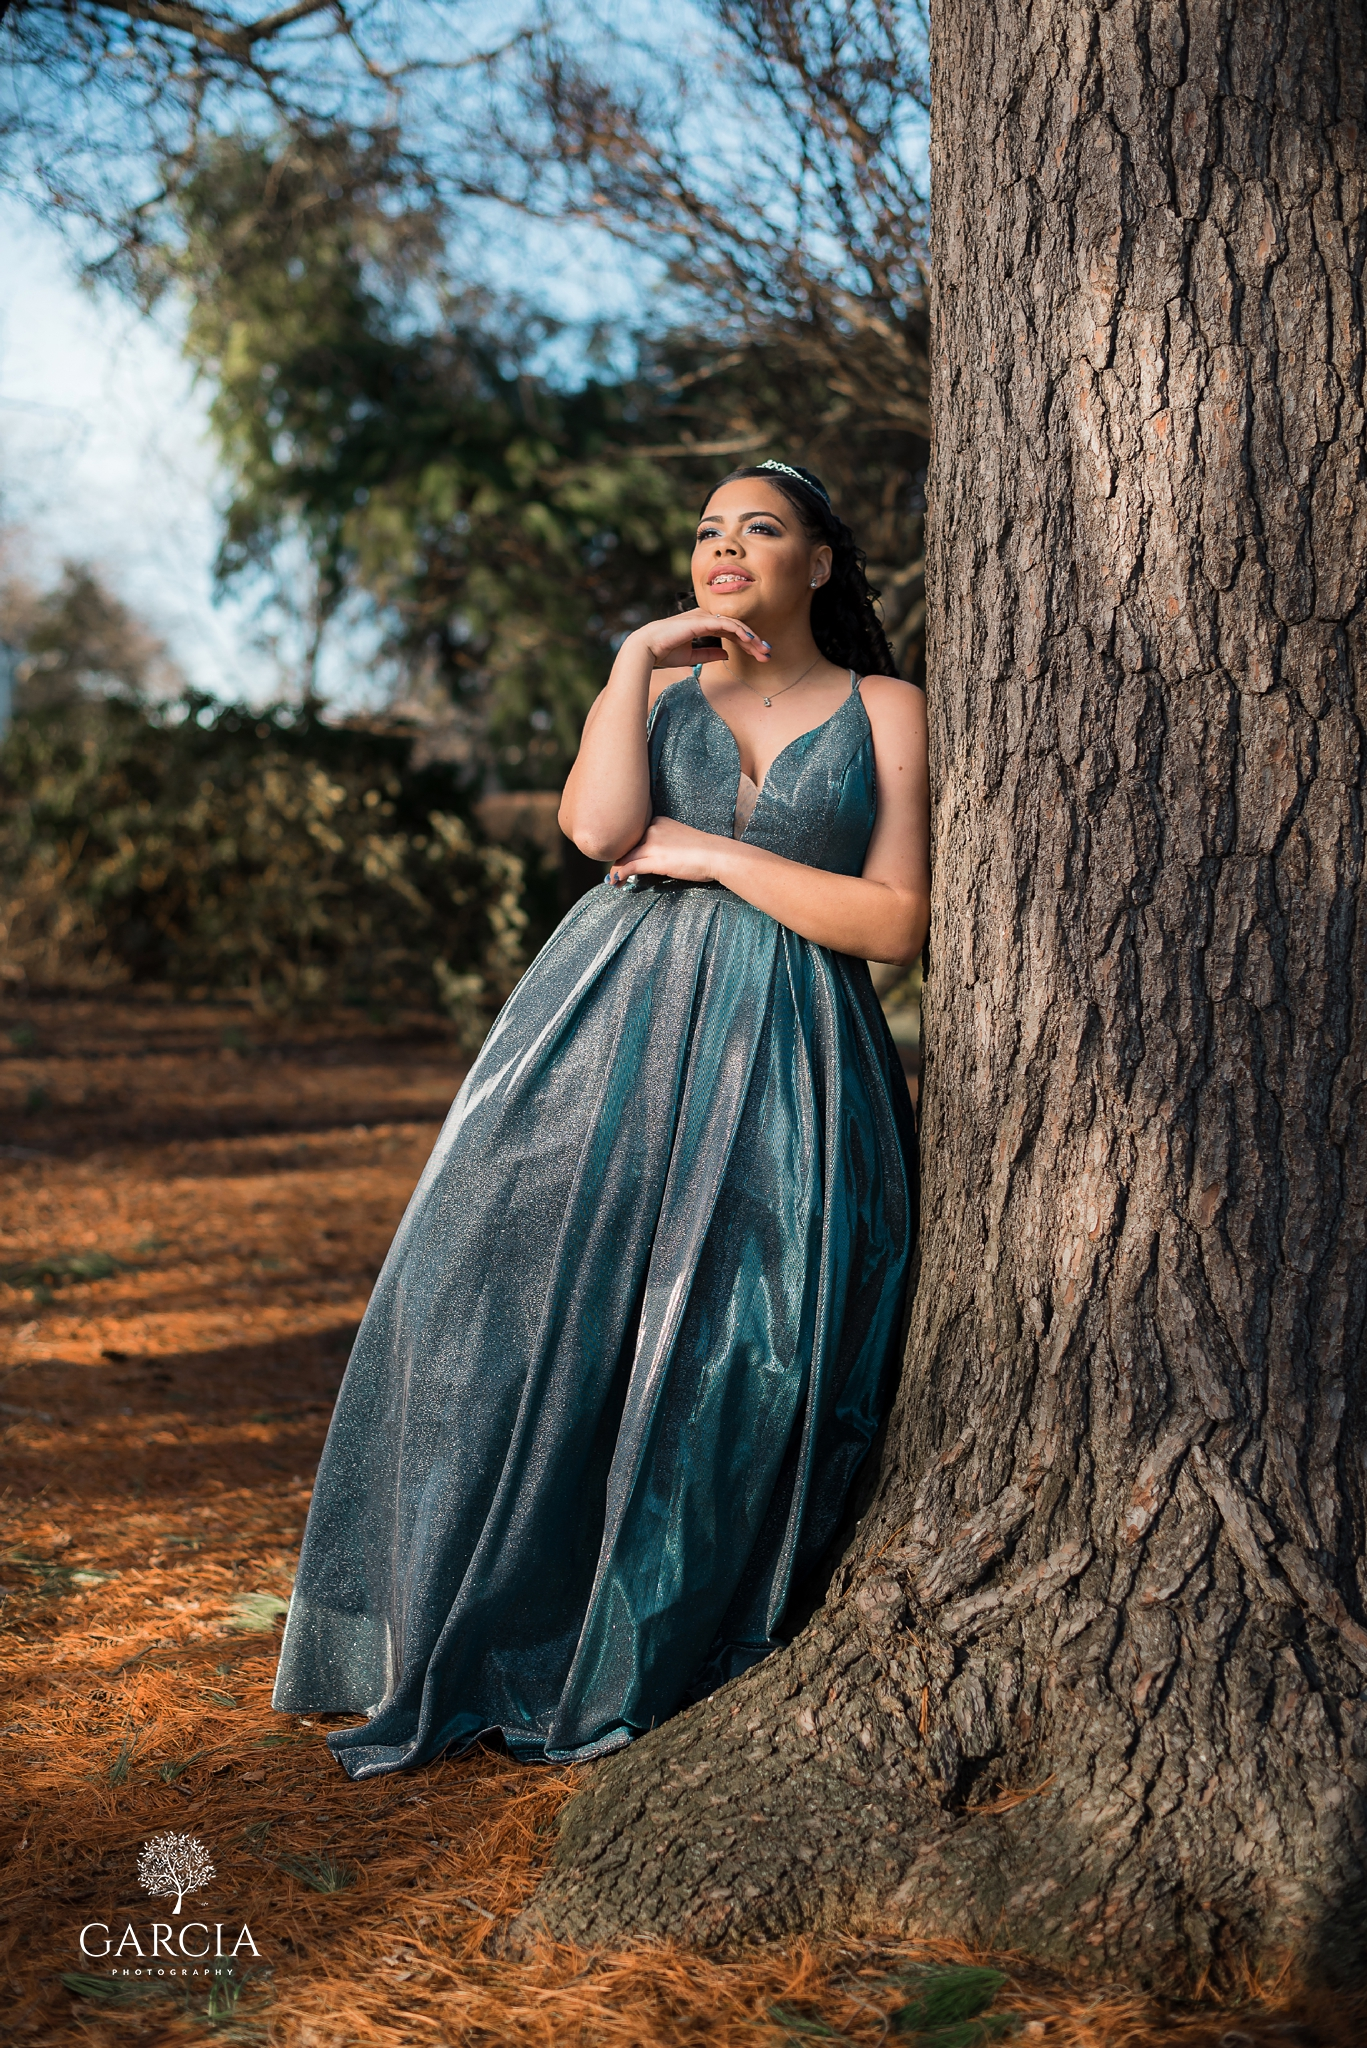 Andrea-Quince-Sesion-Garcia-Photography-6100.jpg